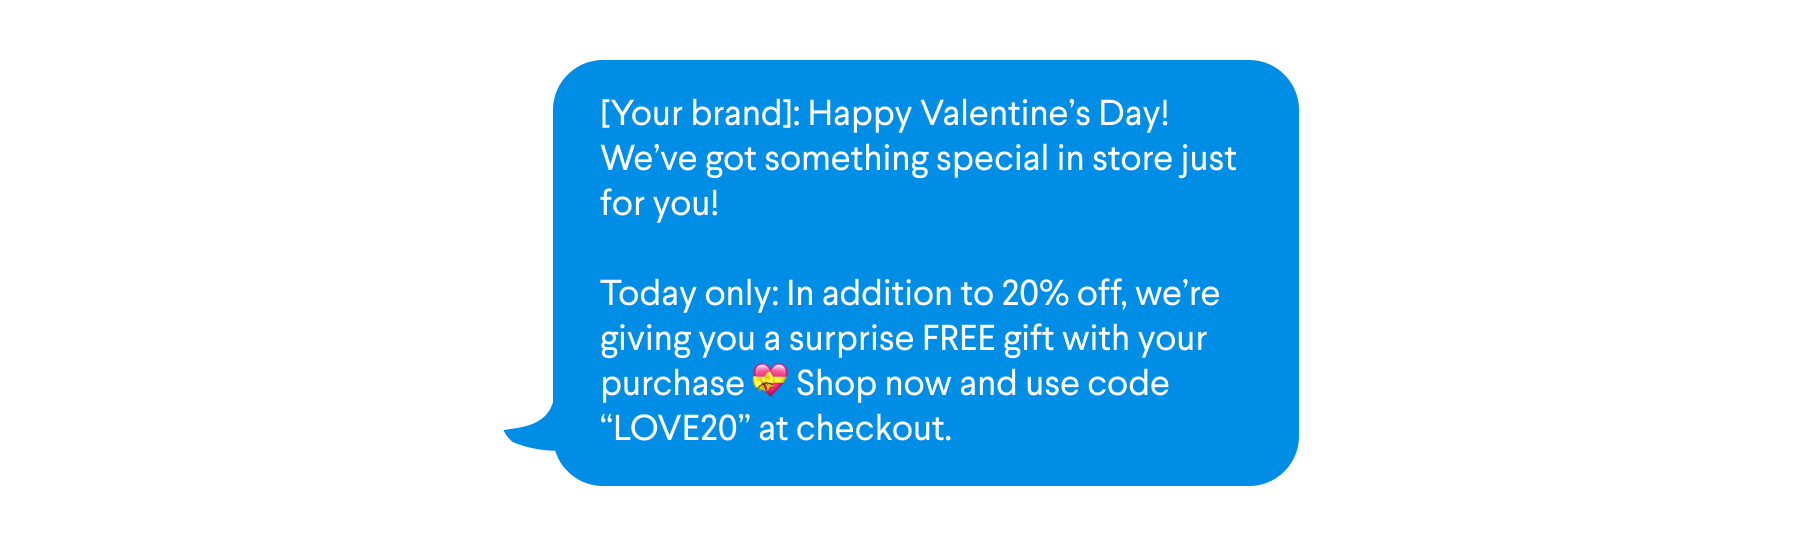 Sample text for SMS campaign to non-click subscribers with offer for a free gift with purchase on Valentine's Day